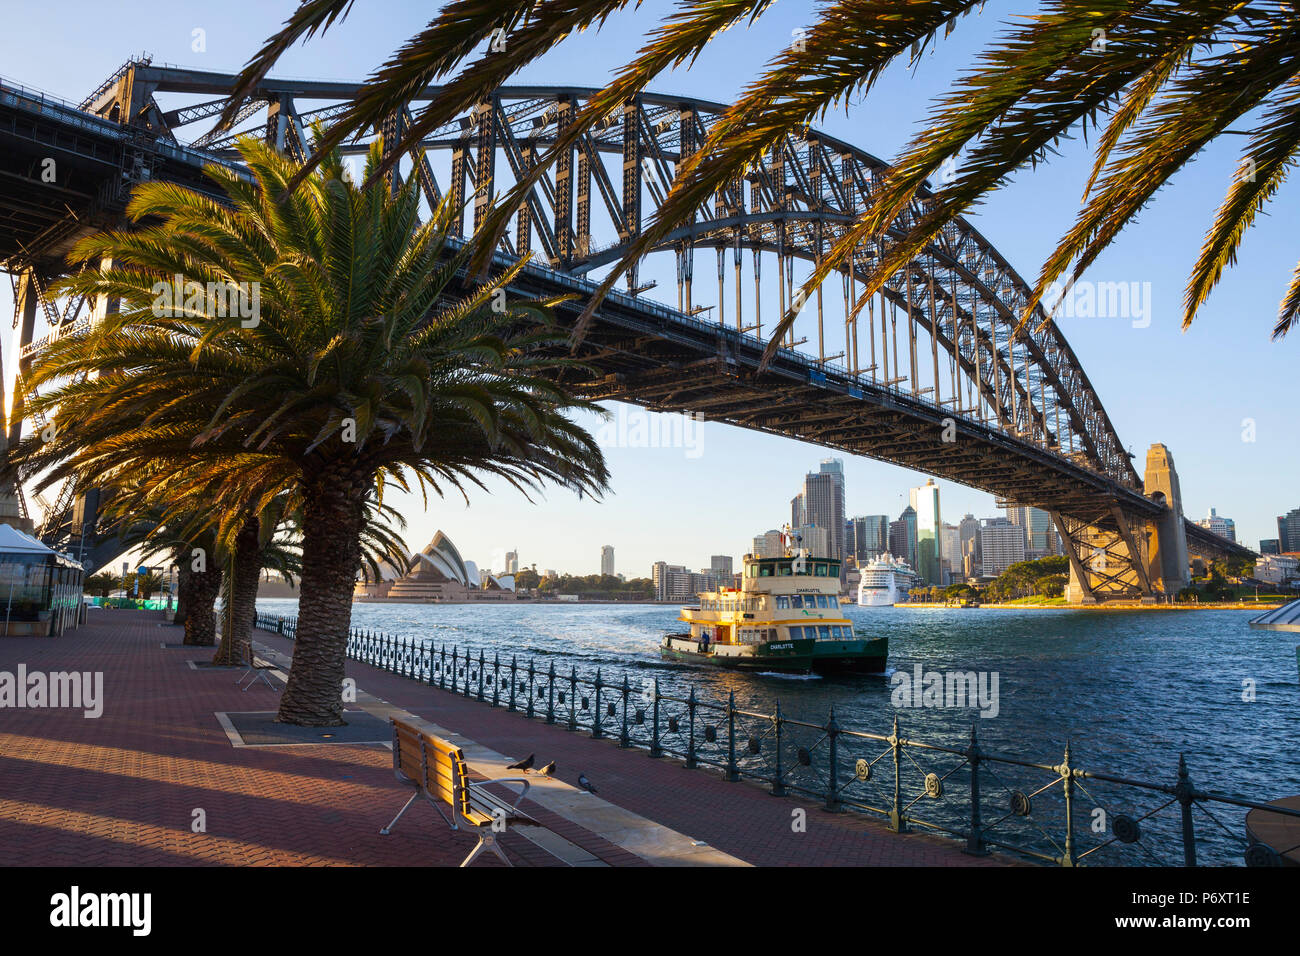 Die Harbour Bridge, Darling Harbour, Sydney, New South Wales, Australien Stockbild